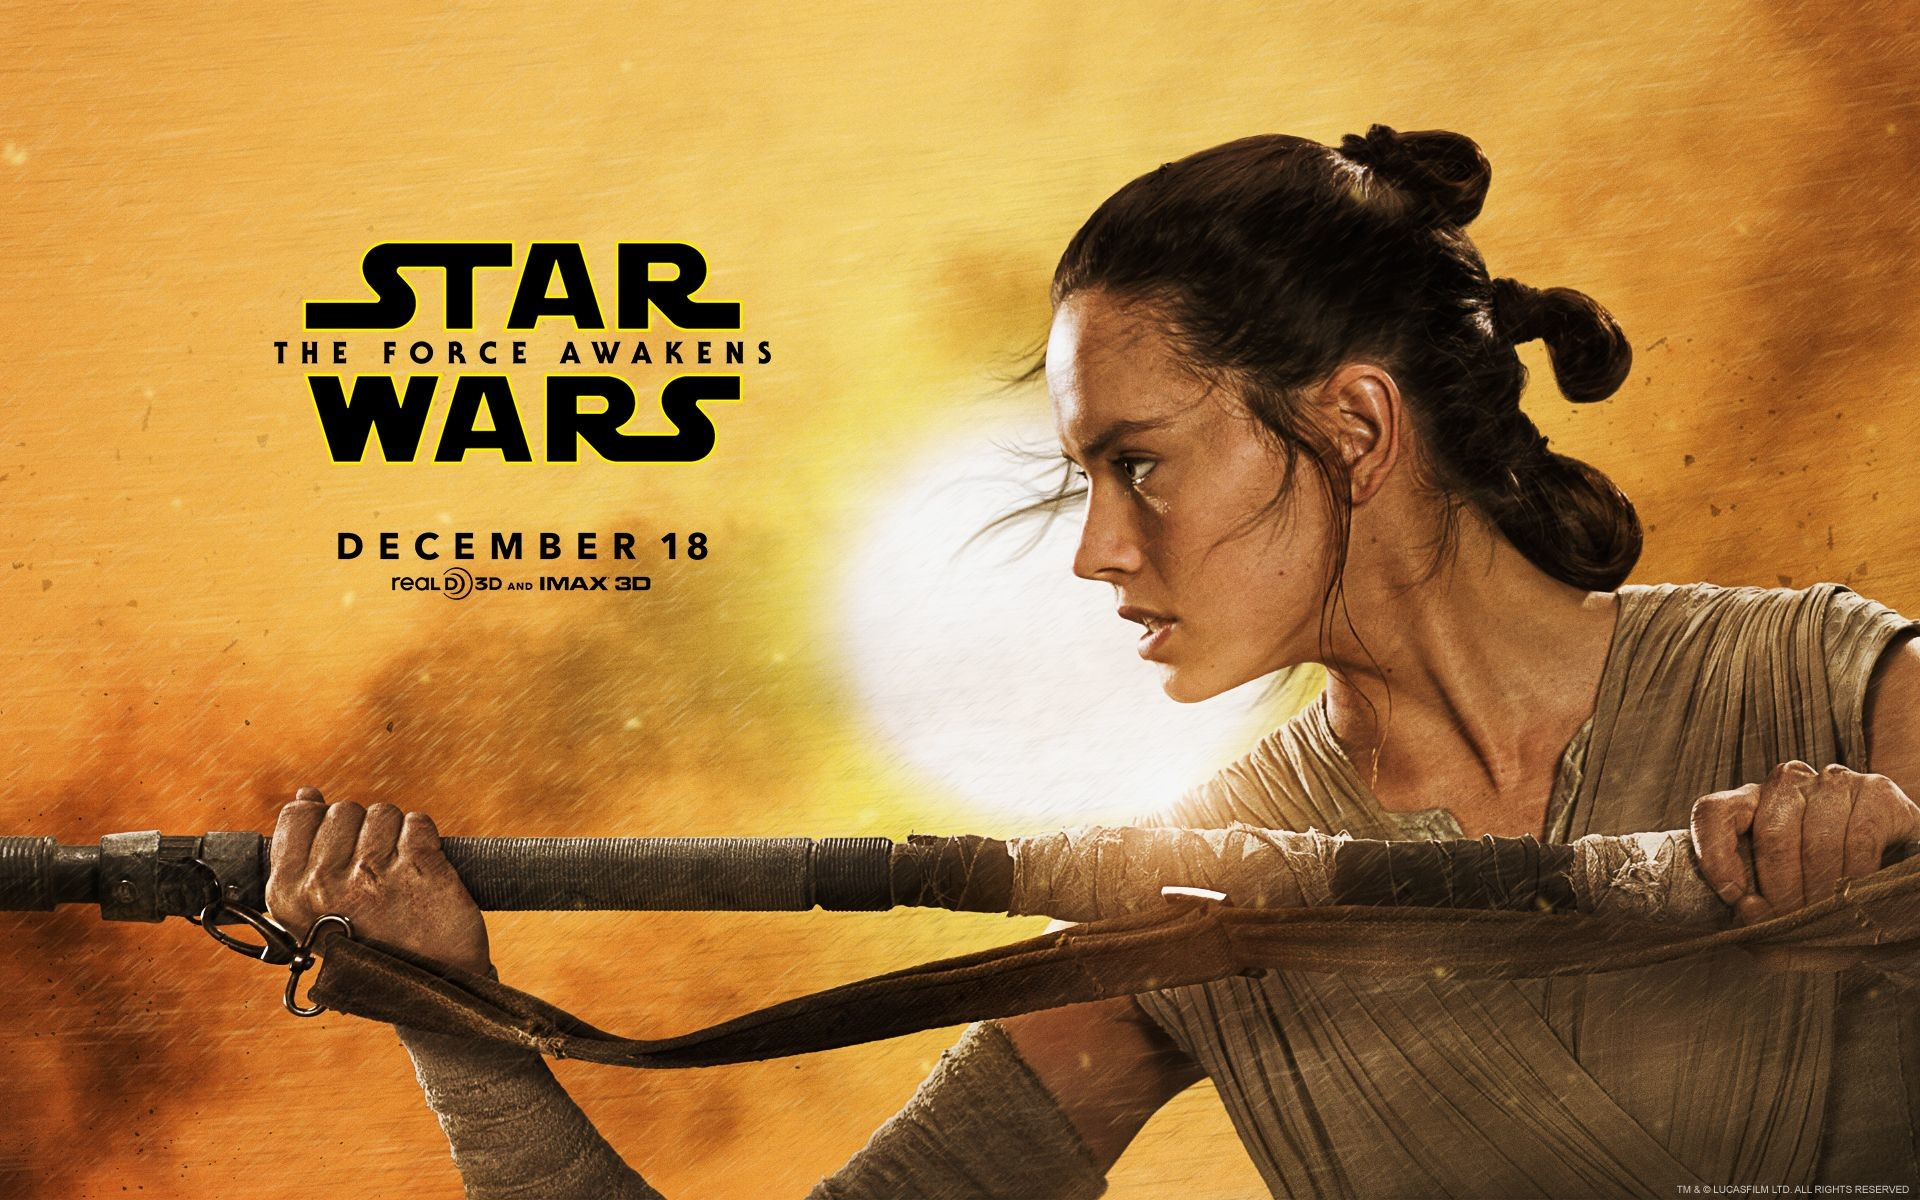 Star Wars The Force Awakens Poe Rey BB8 wallpapers (79 Wallpapers)